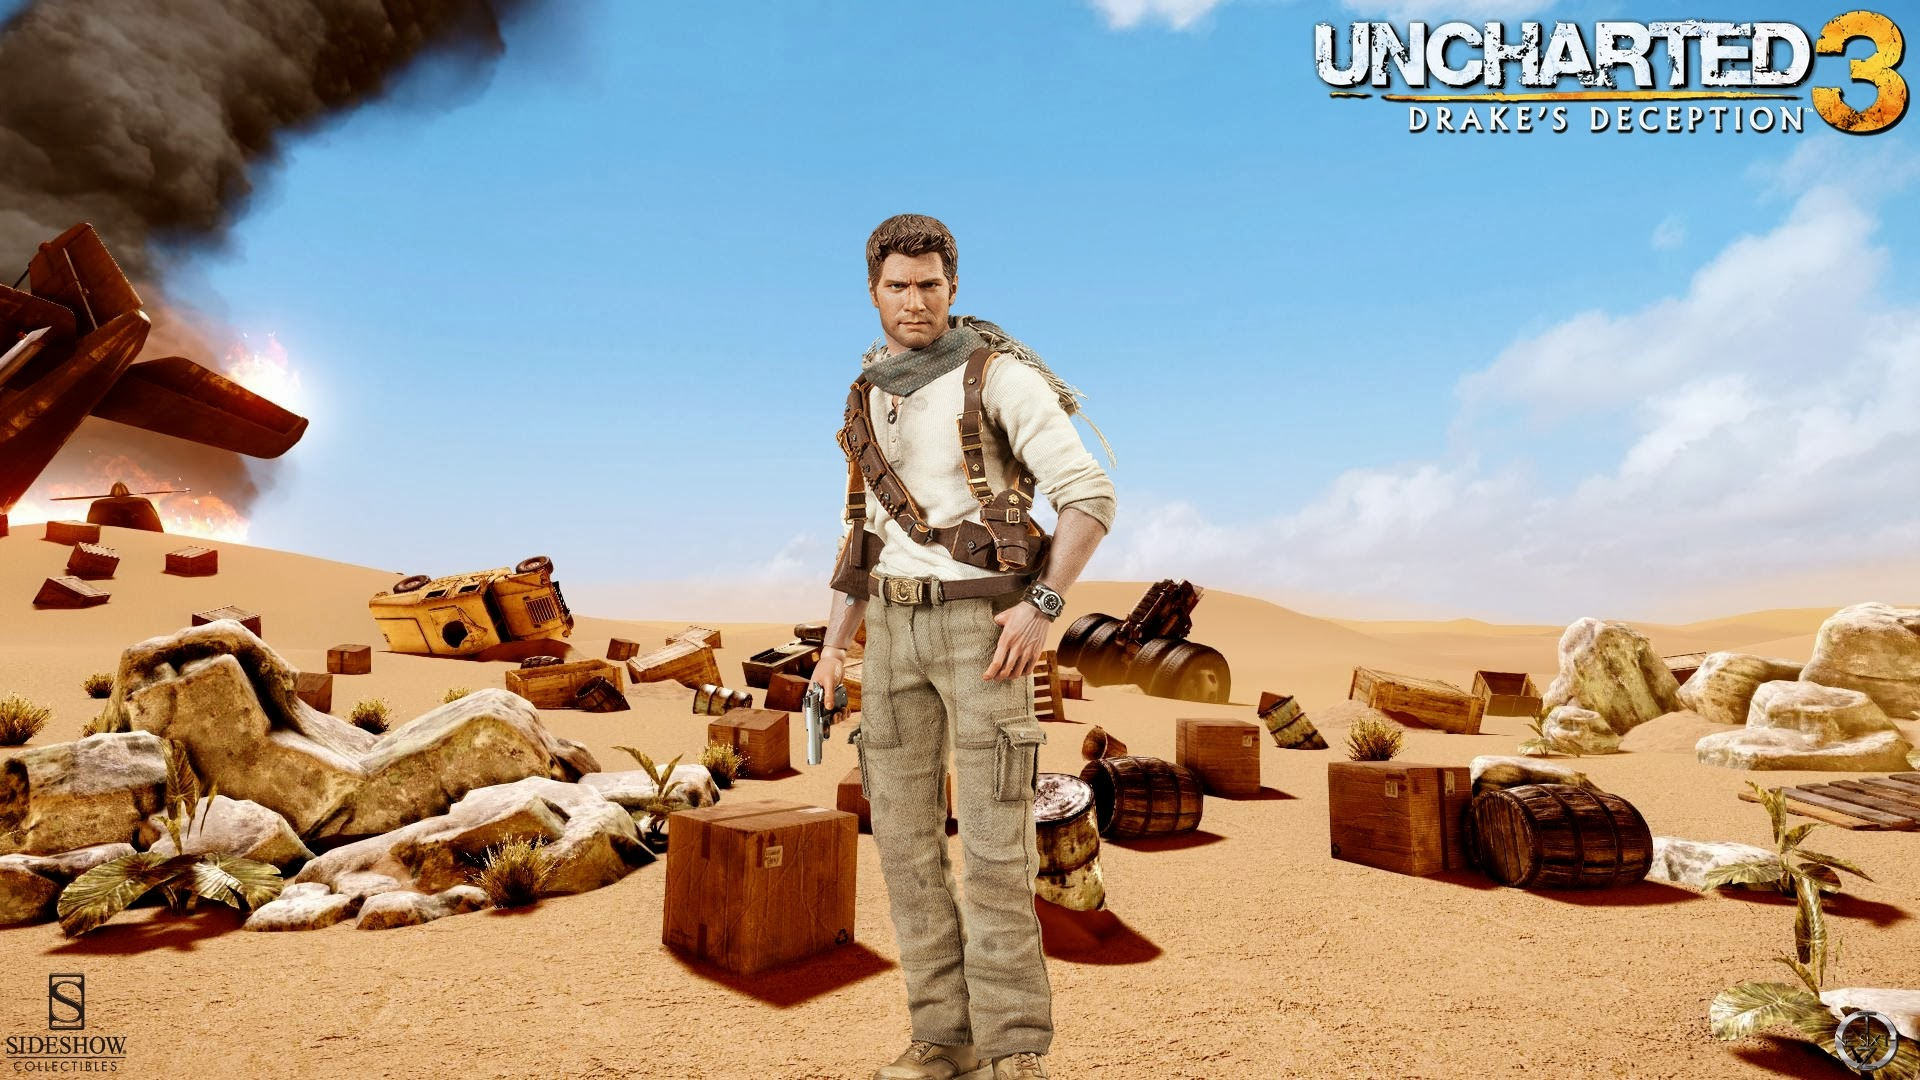 Free Download Nathan Drake Uncharted 3 Sideshow Collectibles